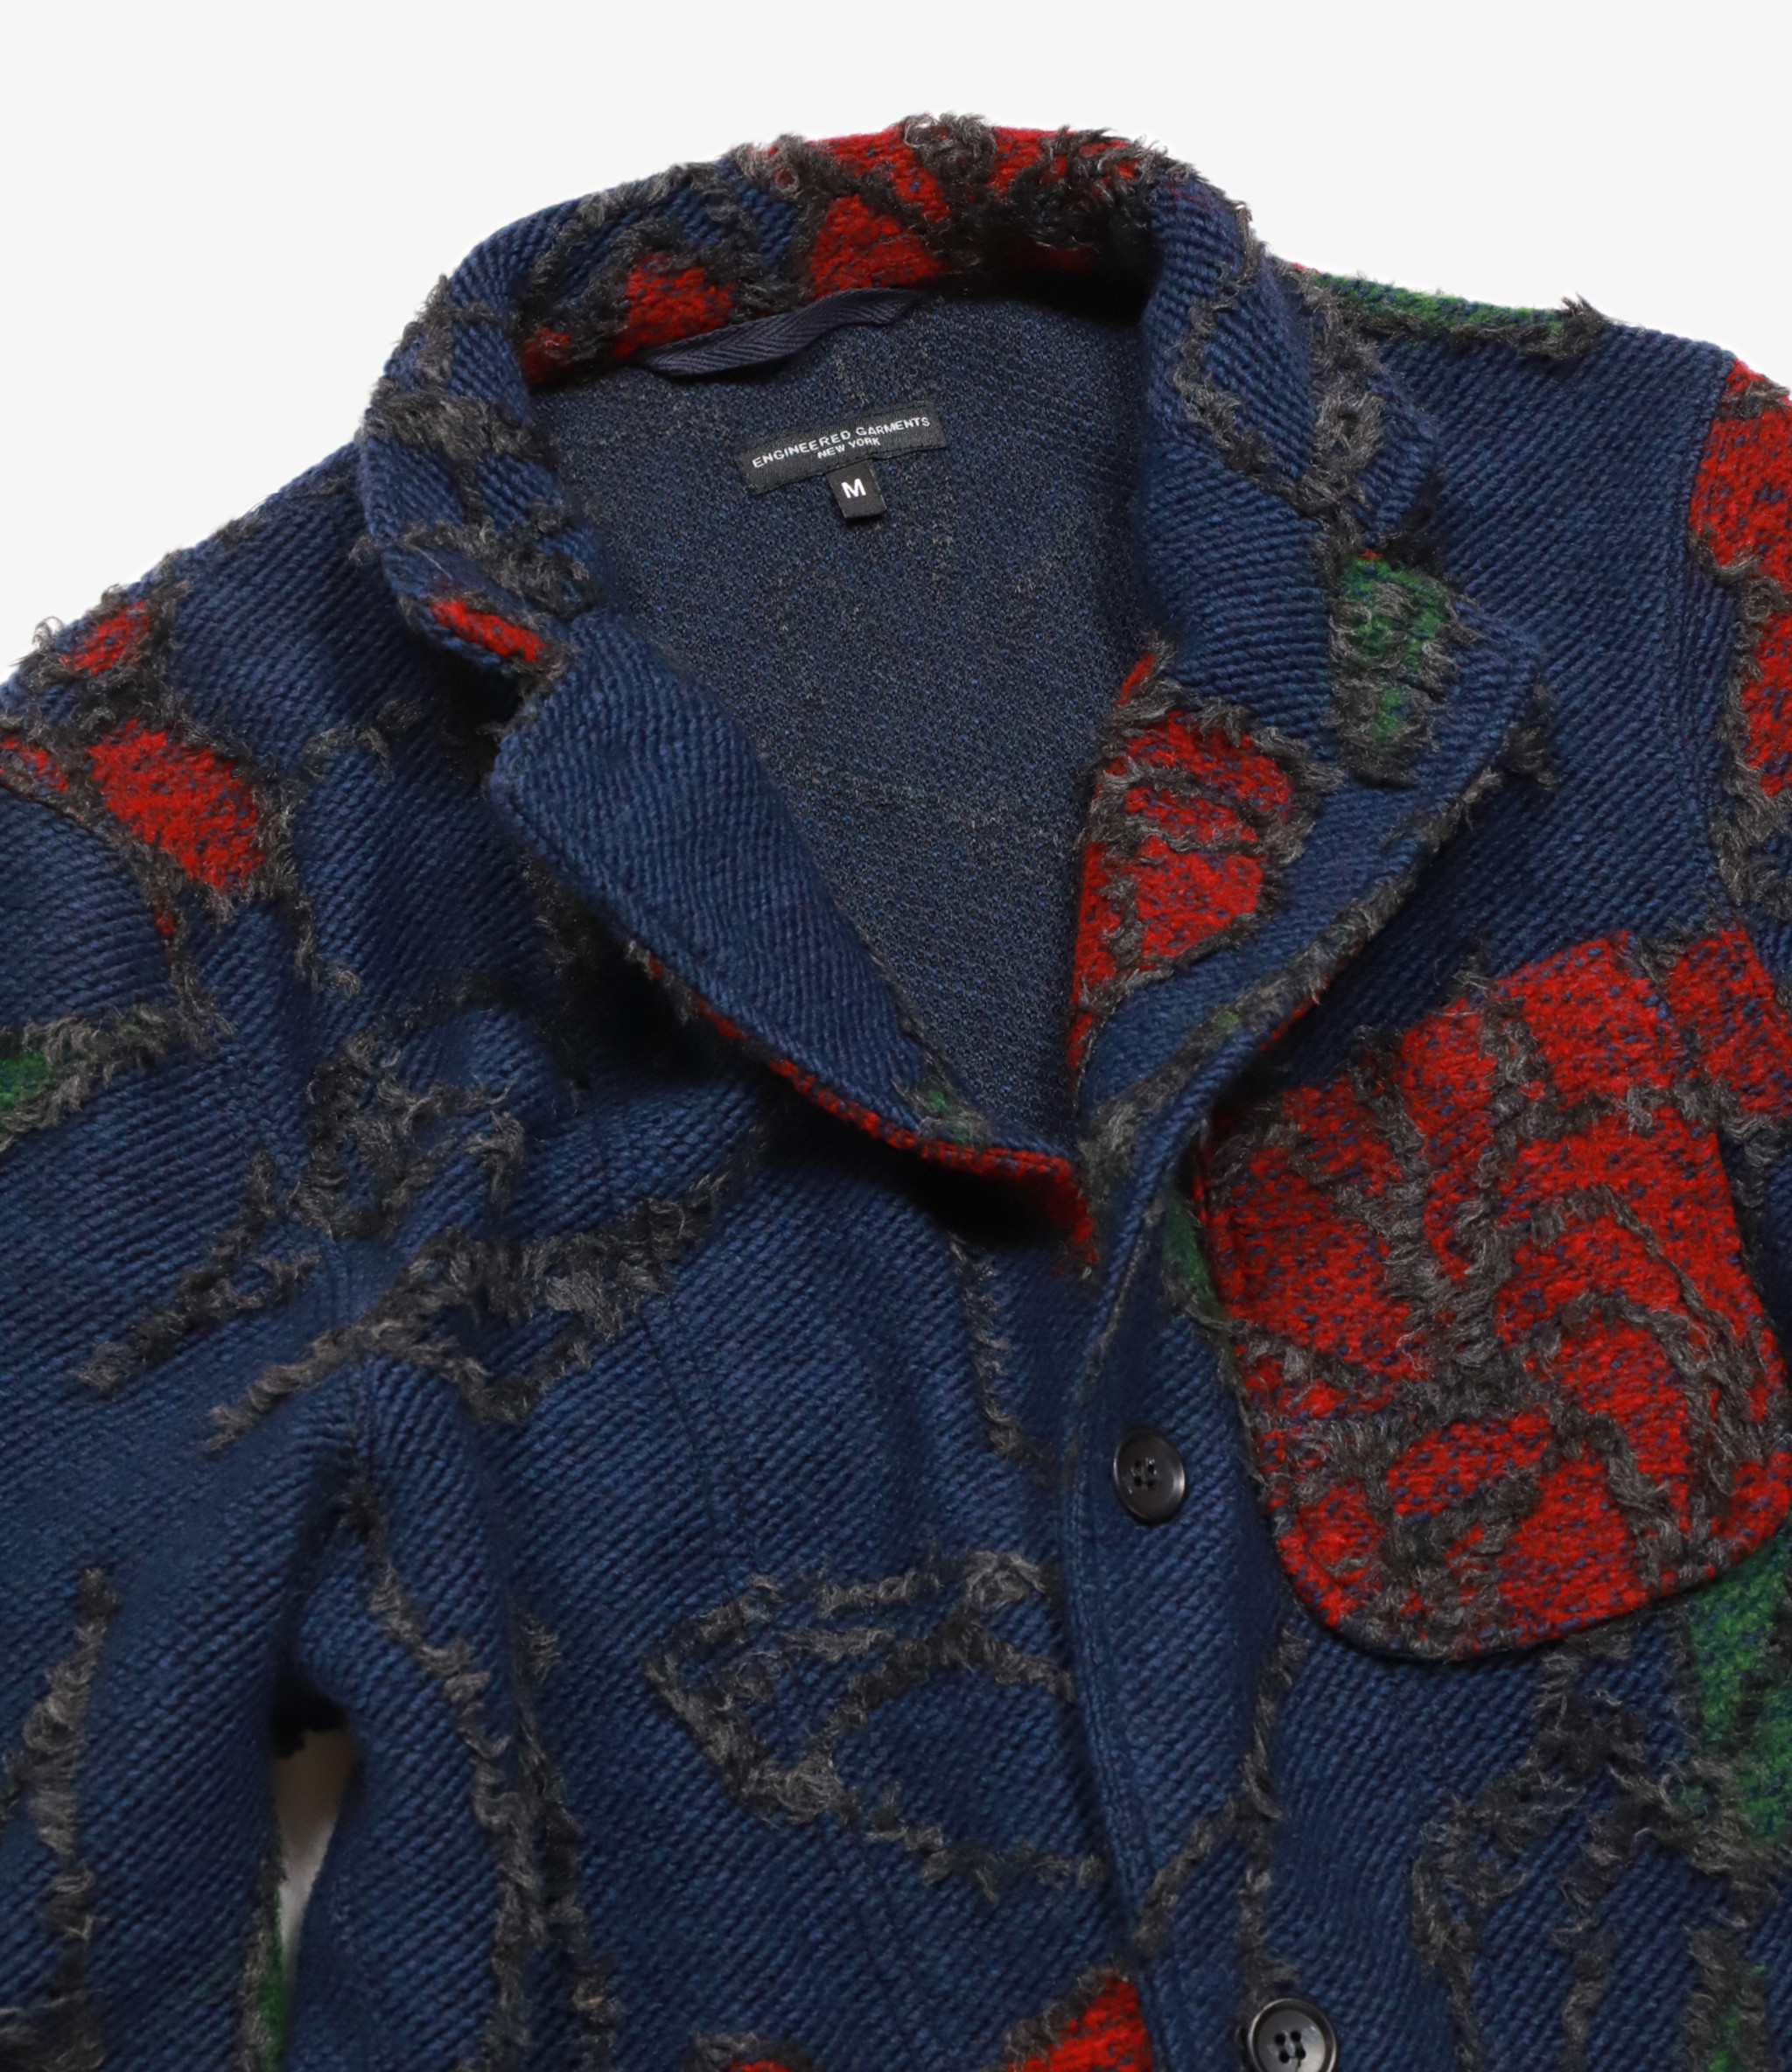 Engineered Garments Knit Jacket - Navy/Red Acrylic Wool Floral Knit Jacquard